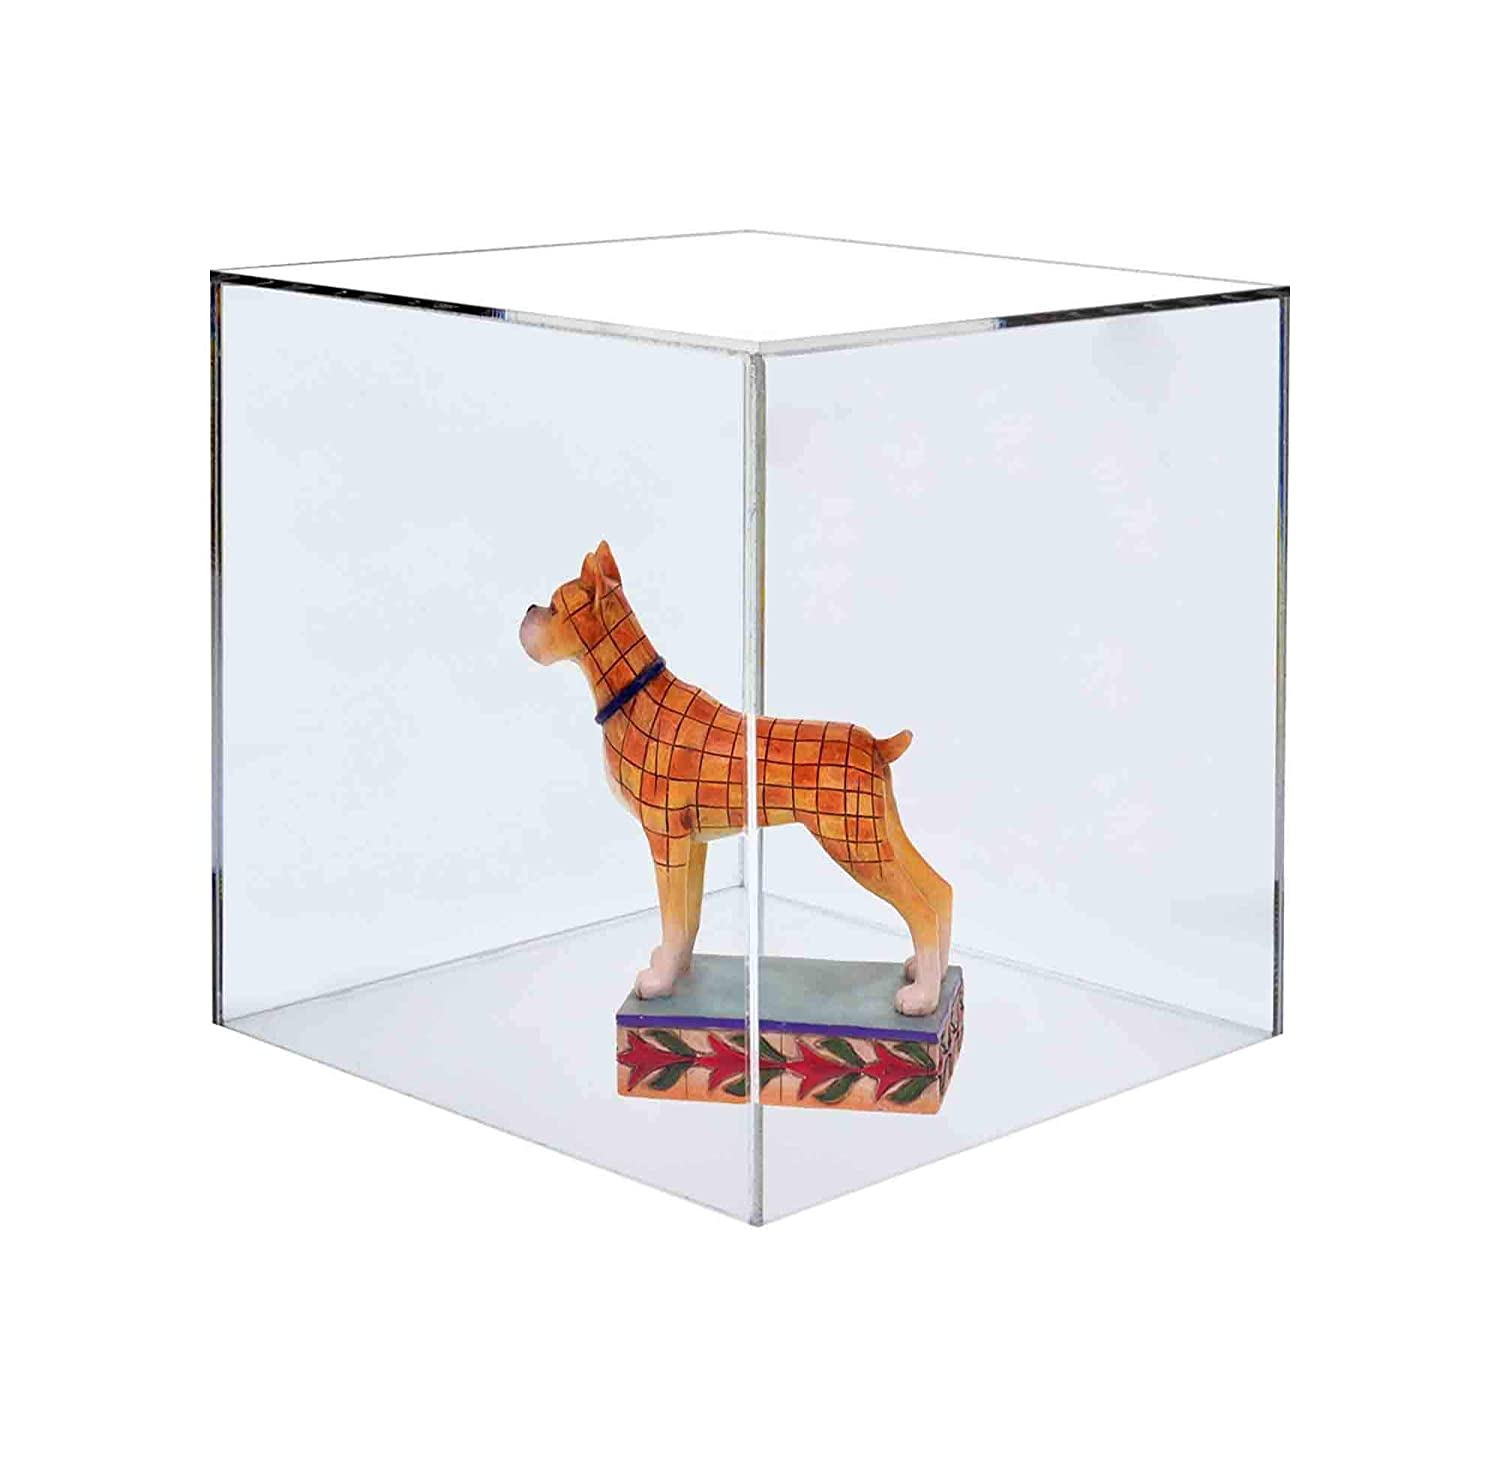 Marketing Holders Show Case 5 Sided Cube Retail Riser Advertisement Display Art Pedestal Museums Wedding Receptions Venues Jewelry Display 1, 12 Inch